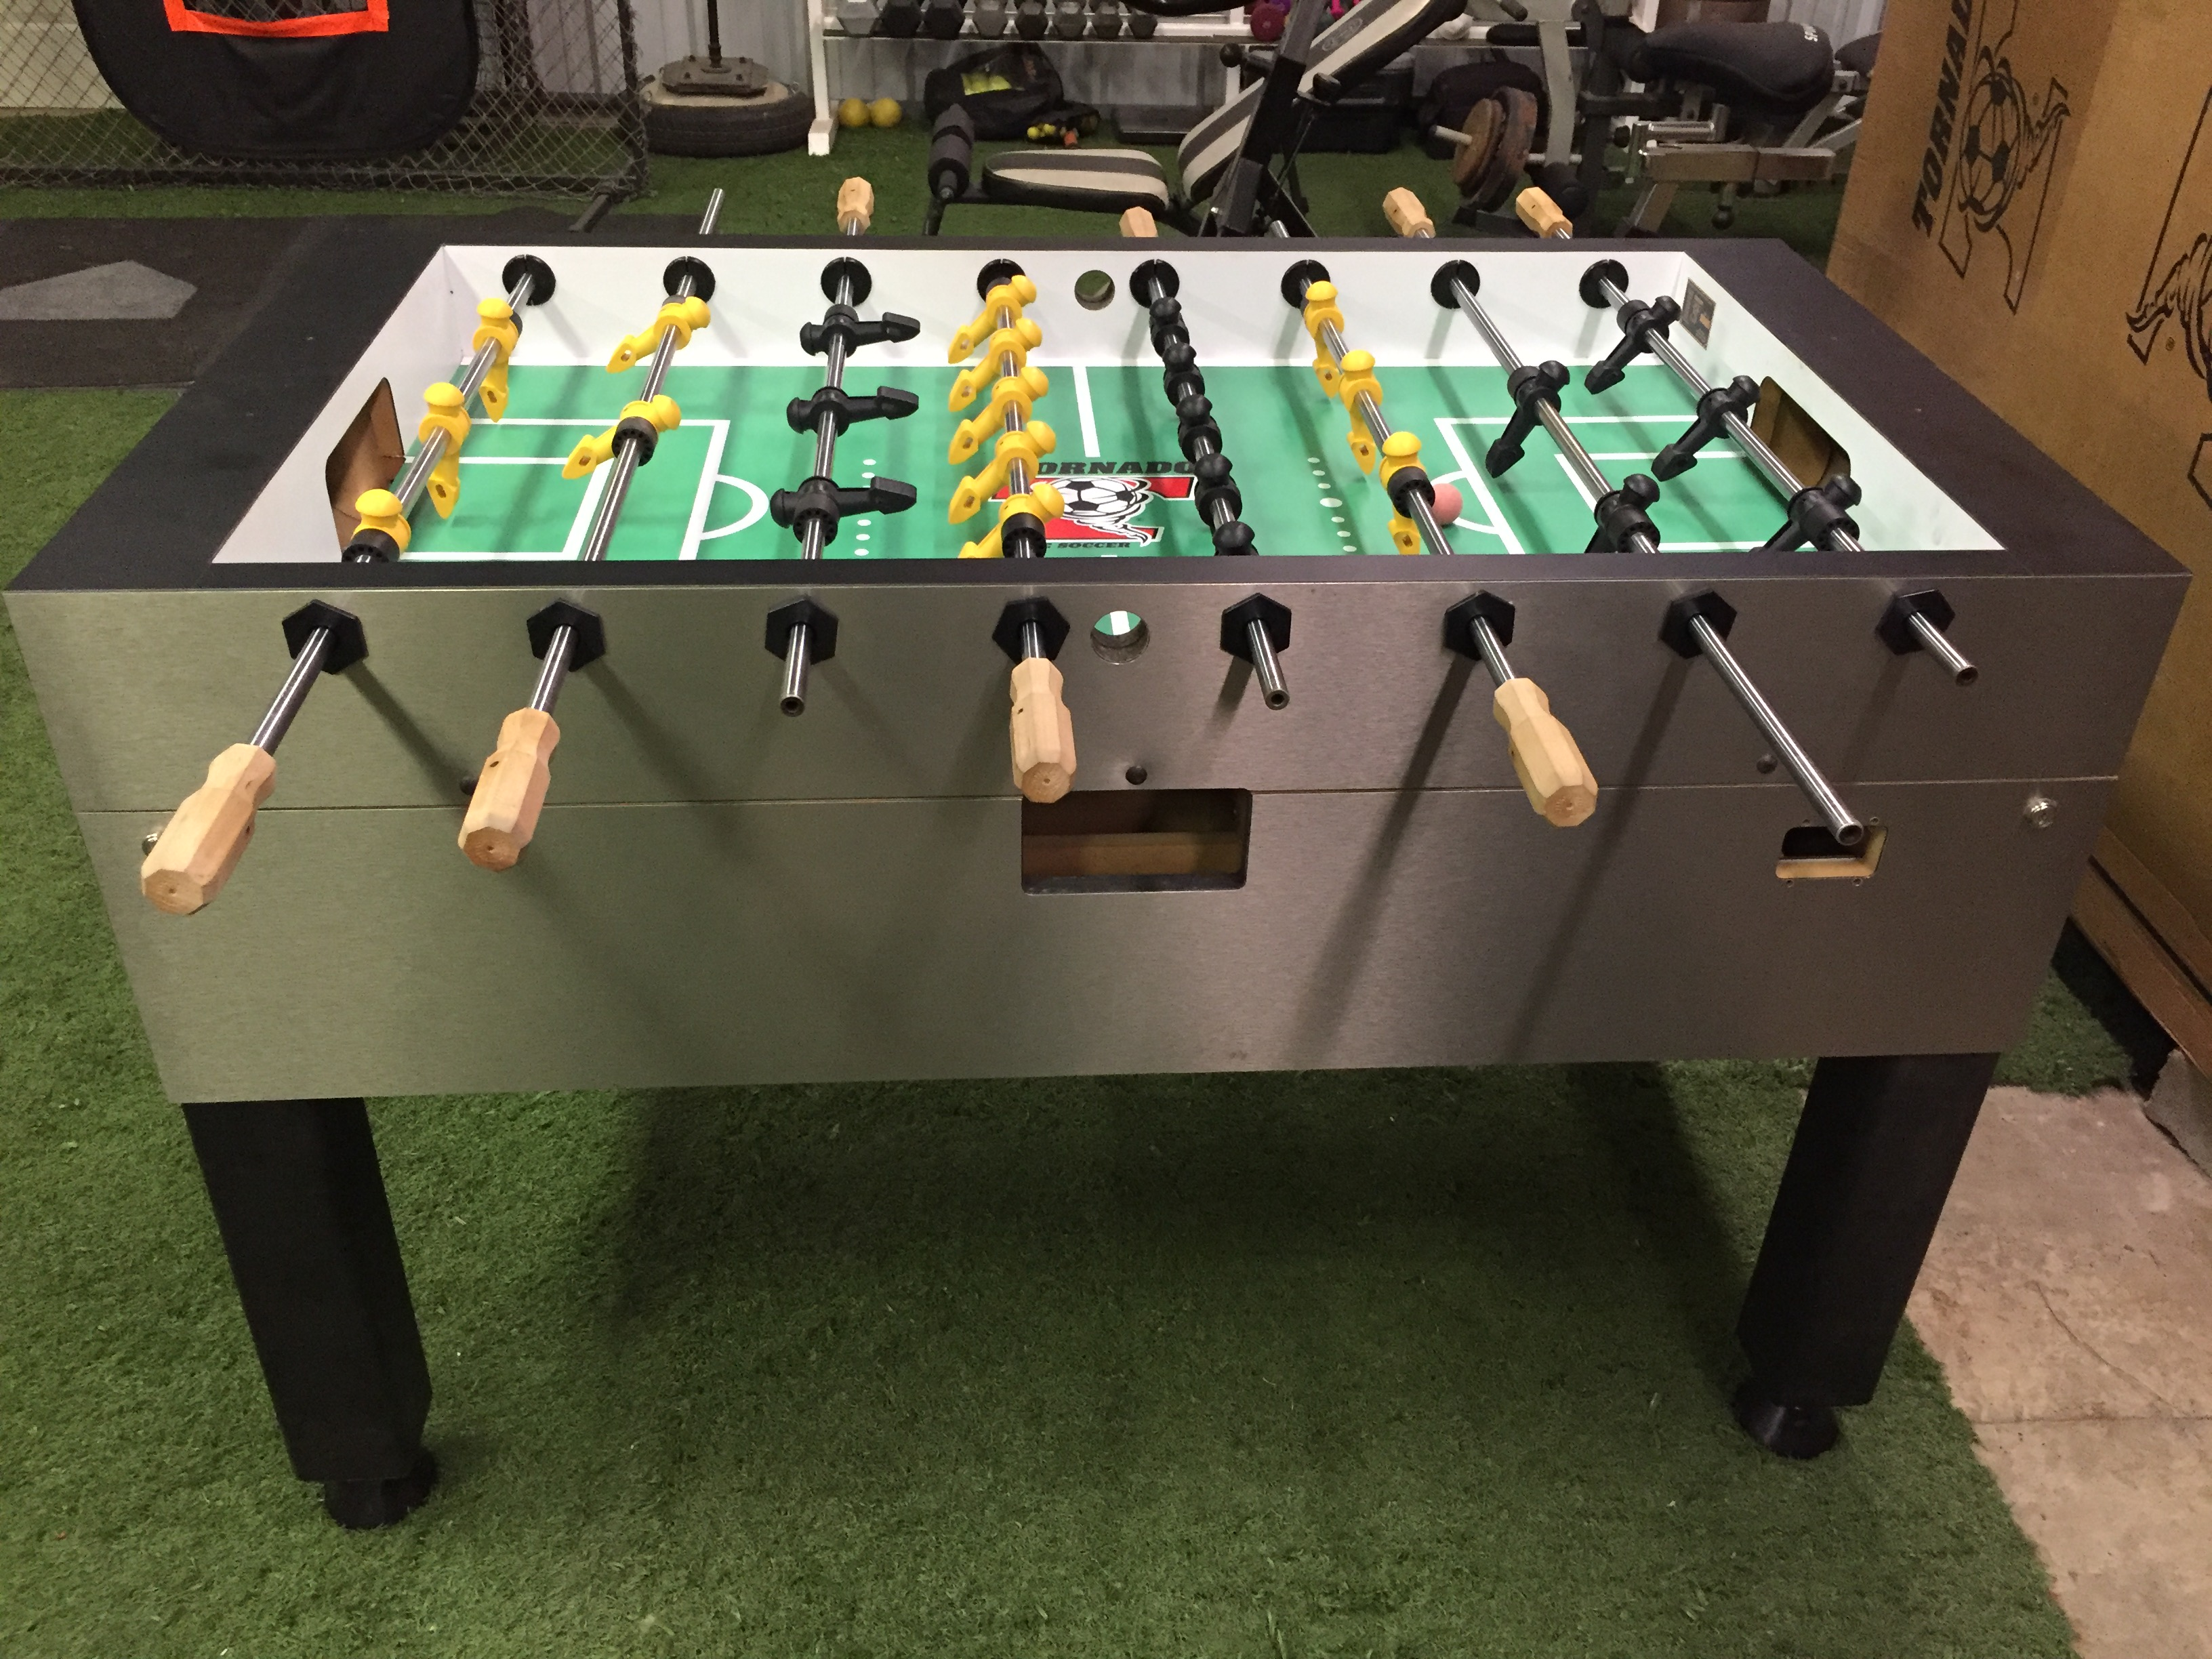 Miraculous Used Tornado Foosball Table Home Model Used Parts Forsale Download Free Architecture Designs Scobabritishbridgeorg